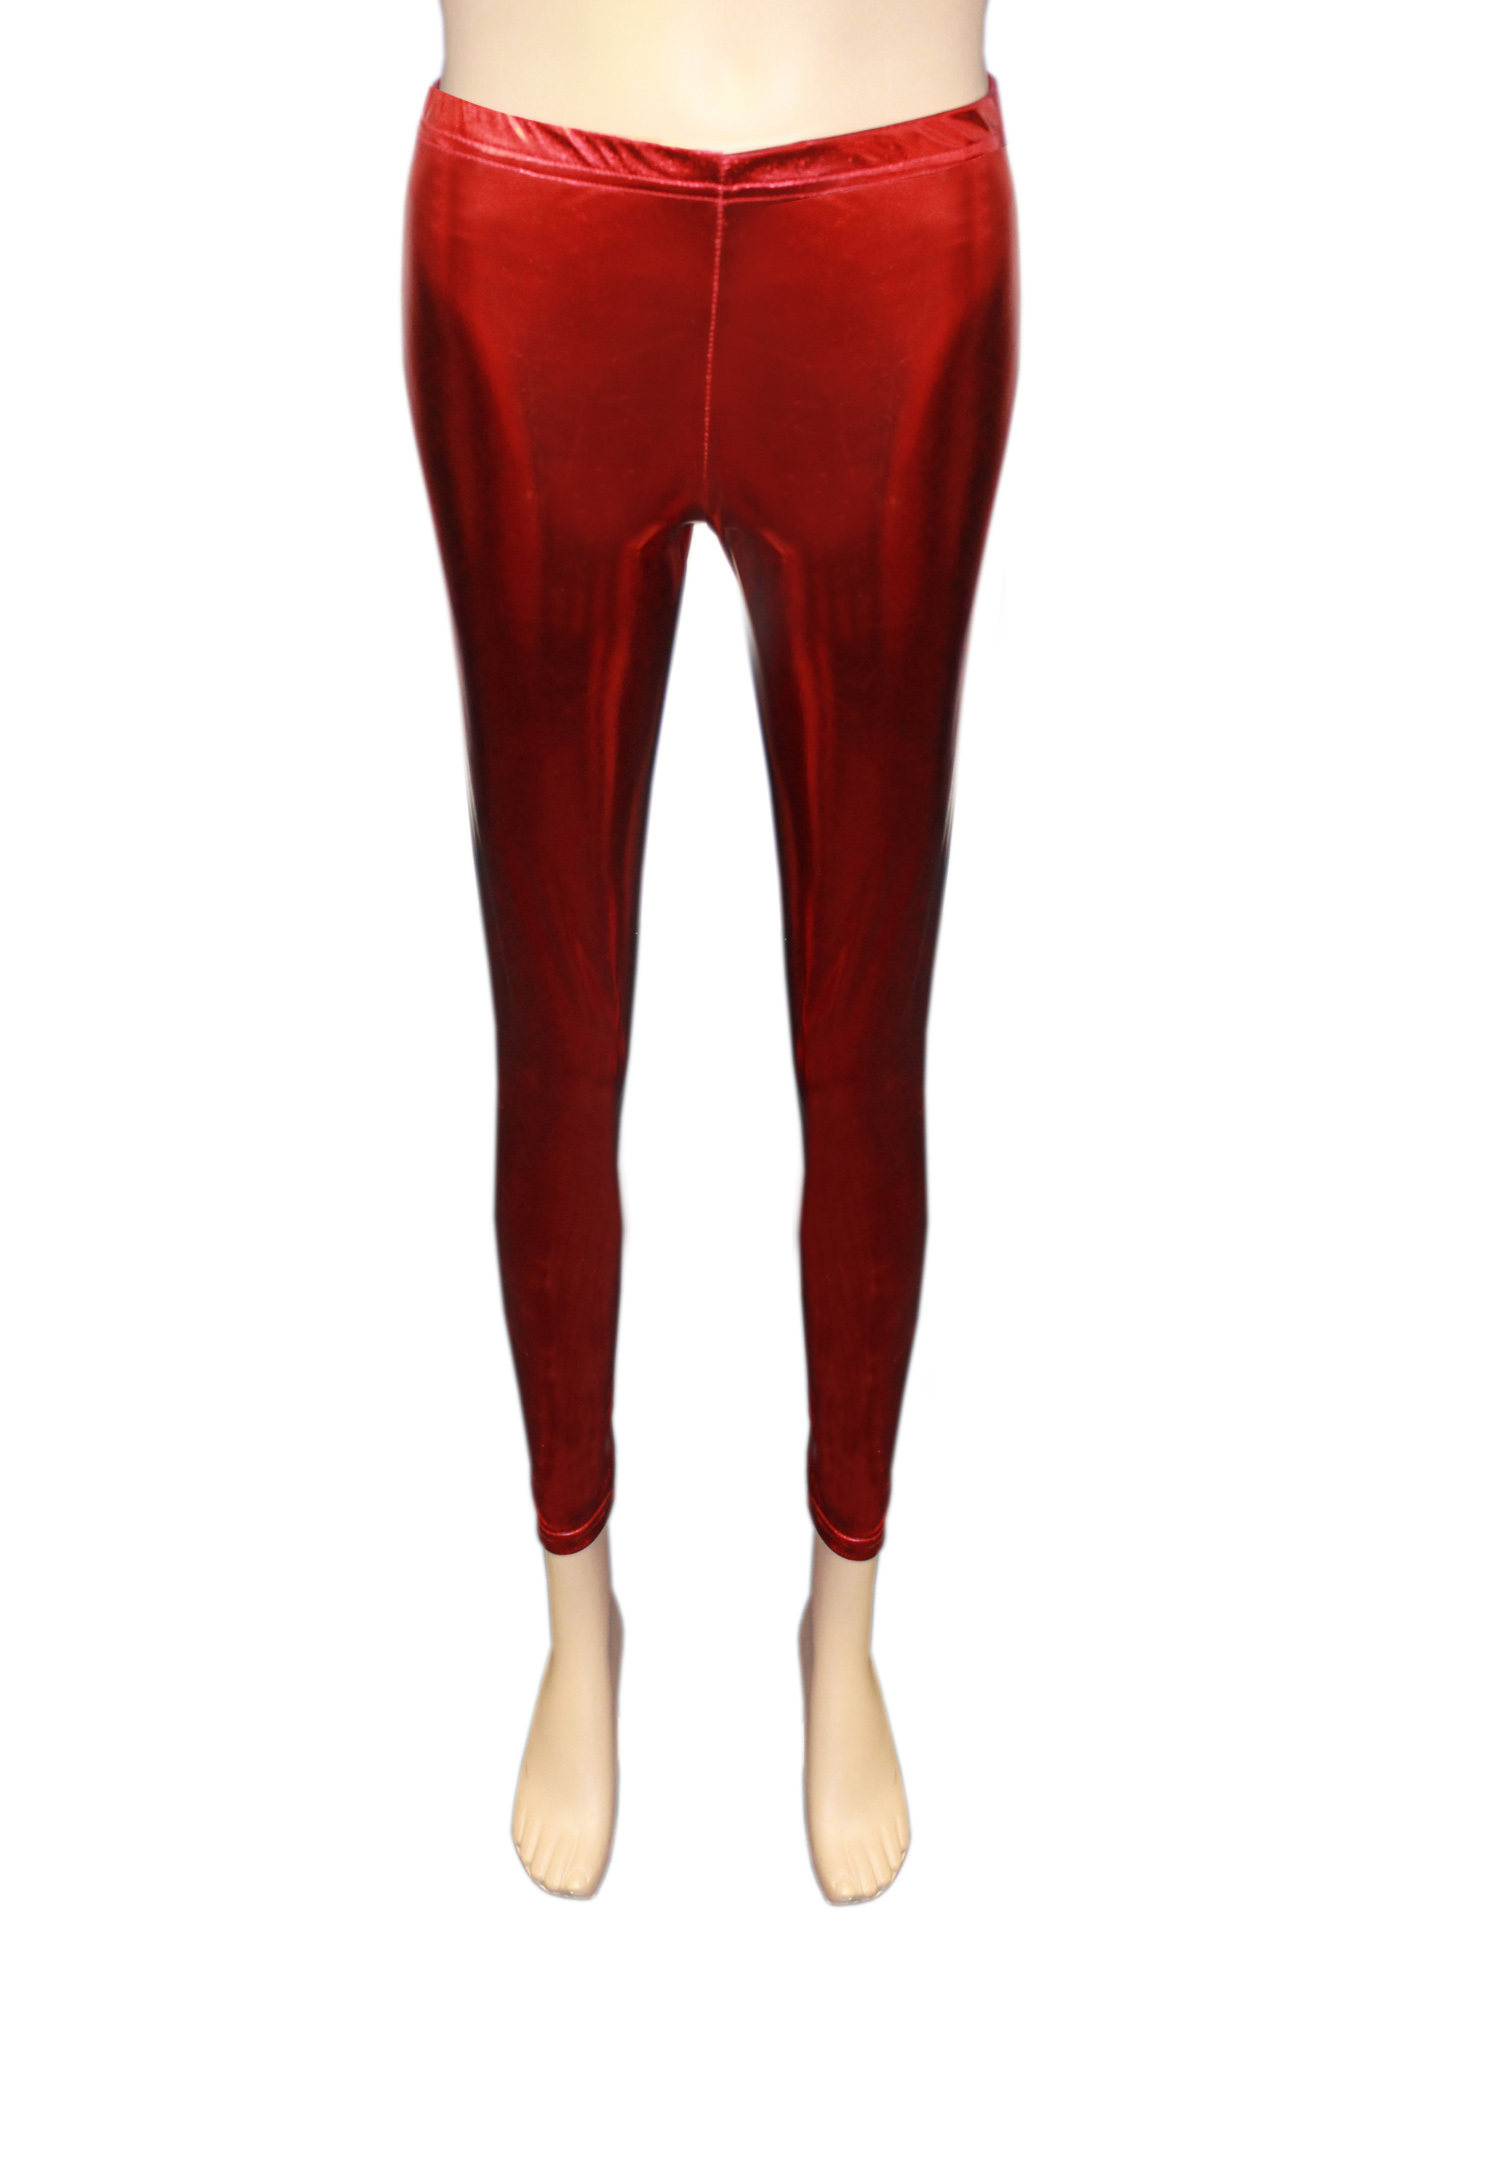 Girls Shiny Metallic Red Leggings